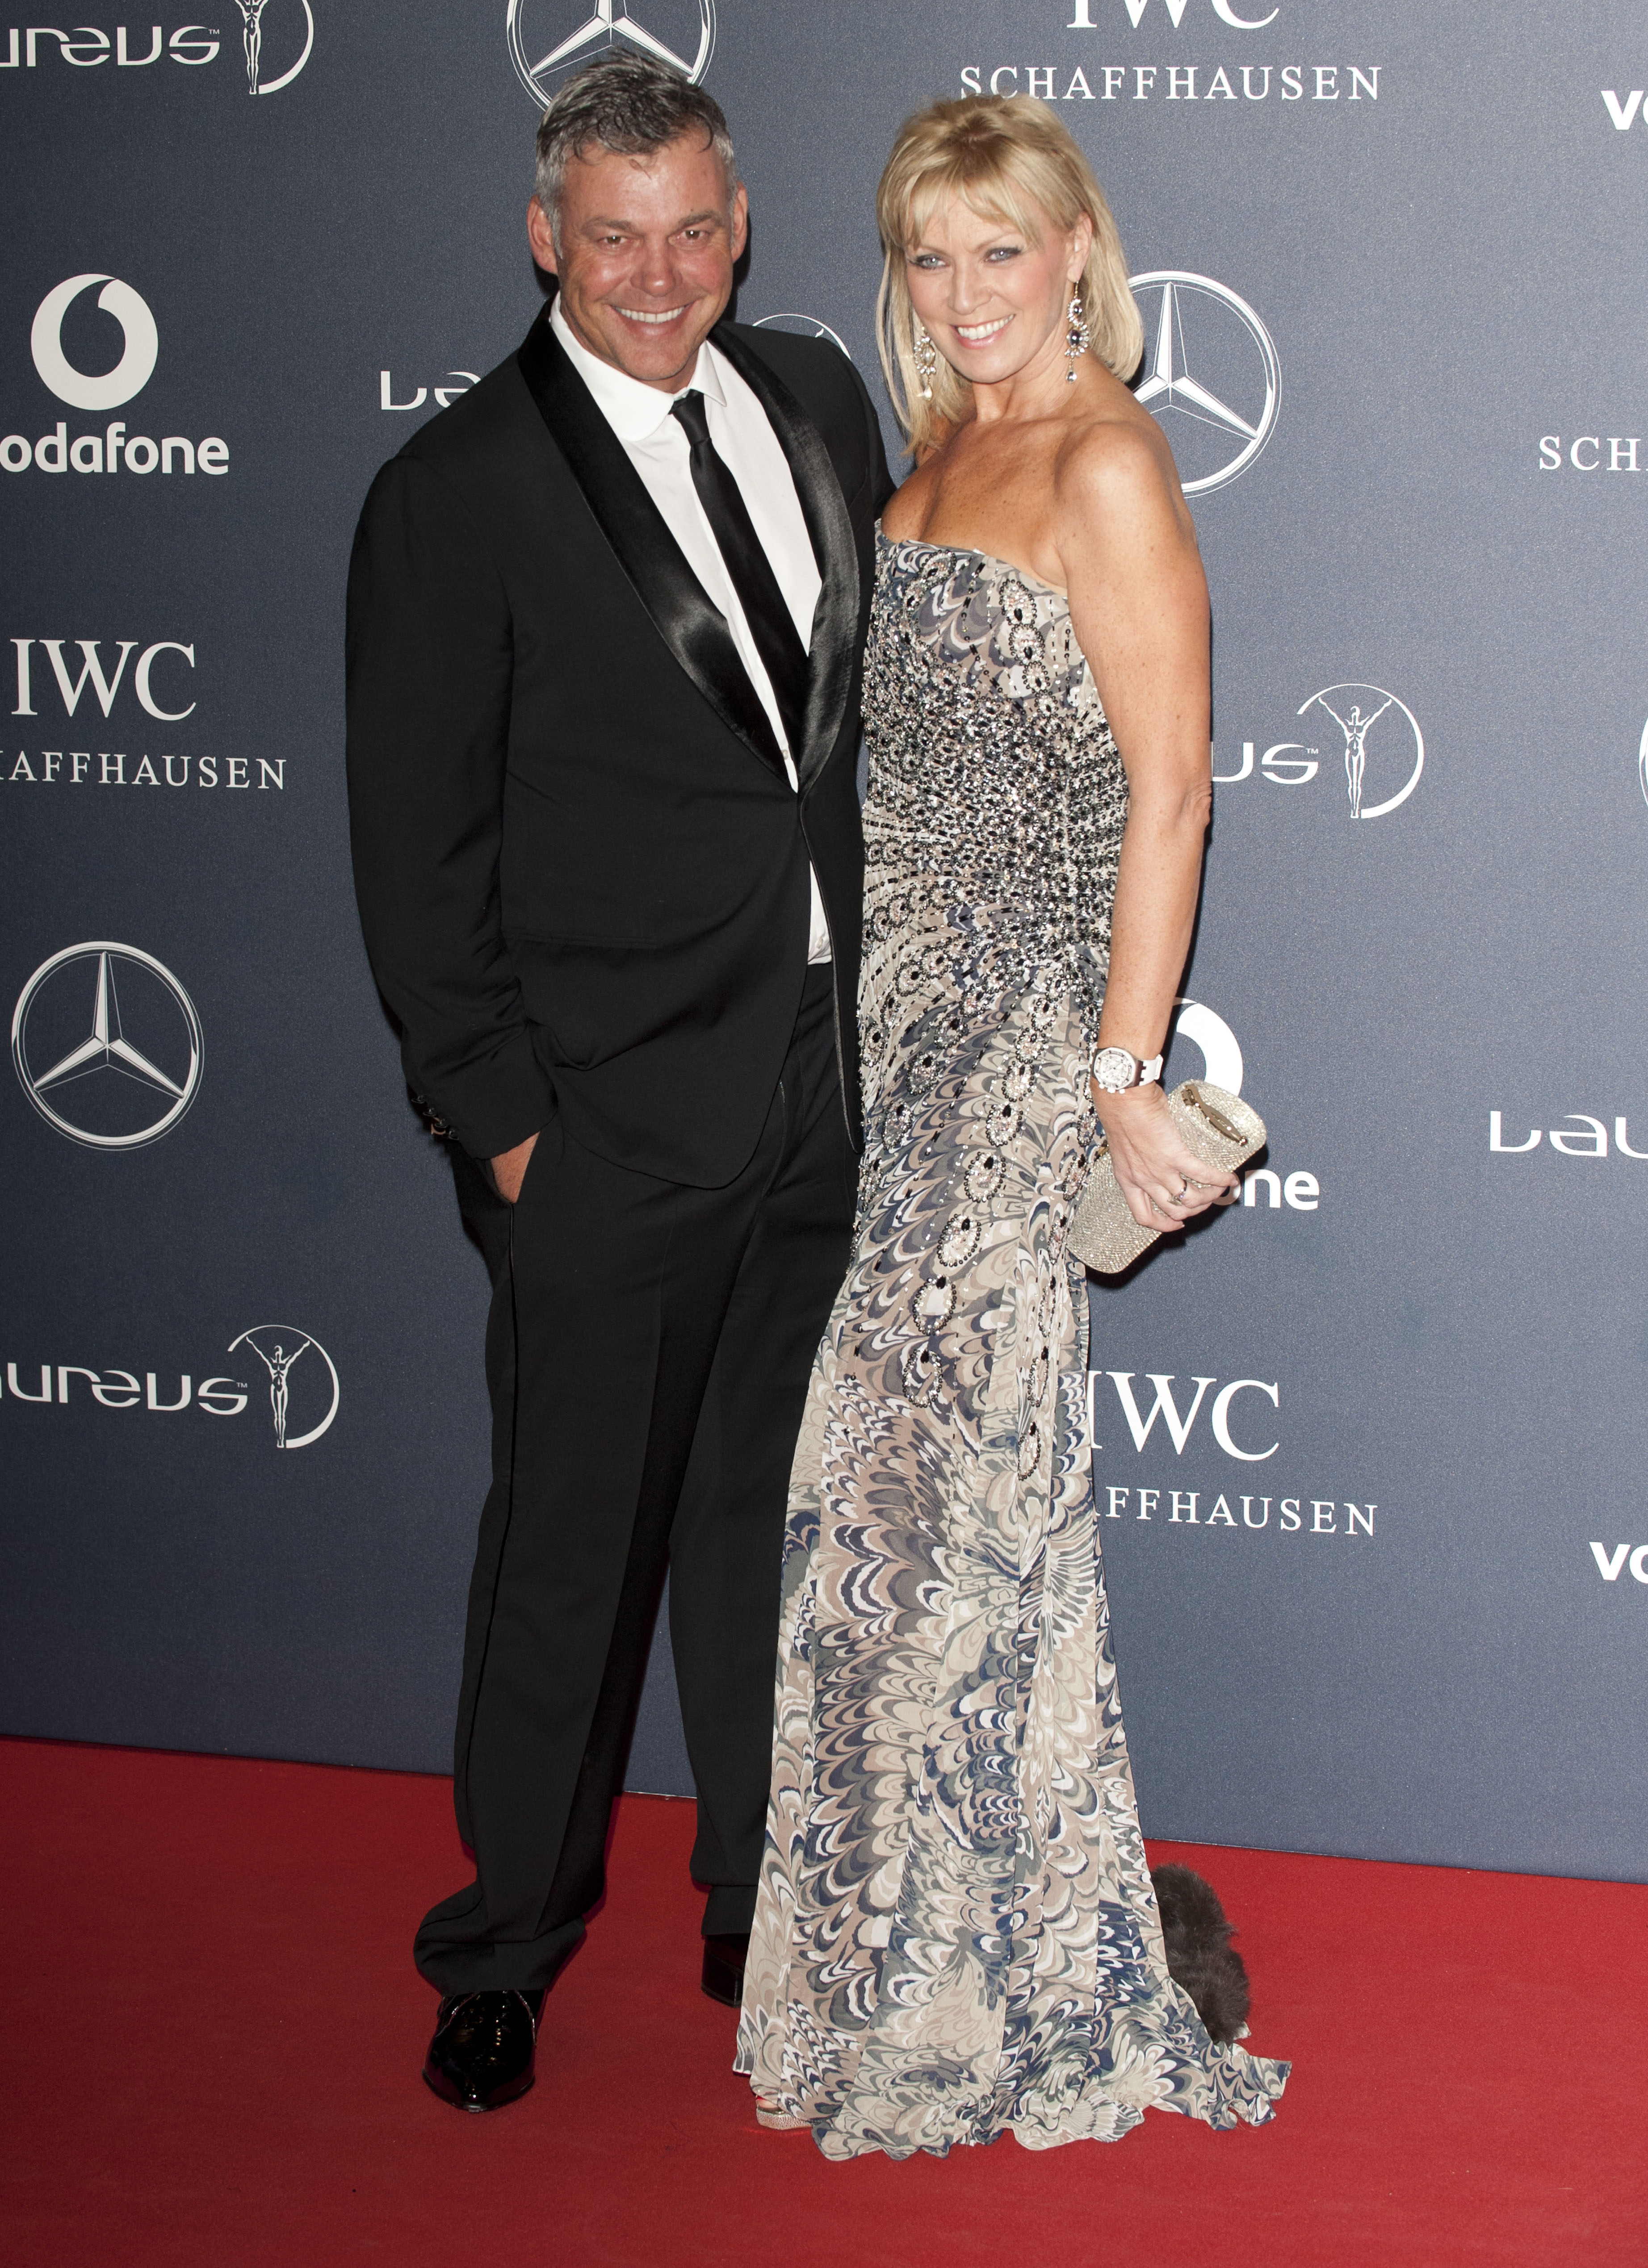 Darren Clarke with then-fiancee Alison Campbell in 2012